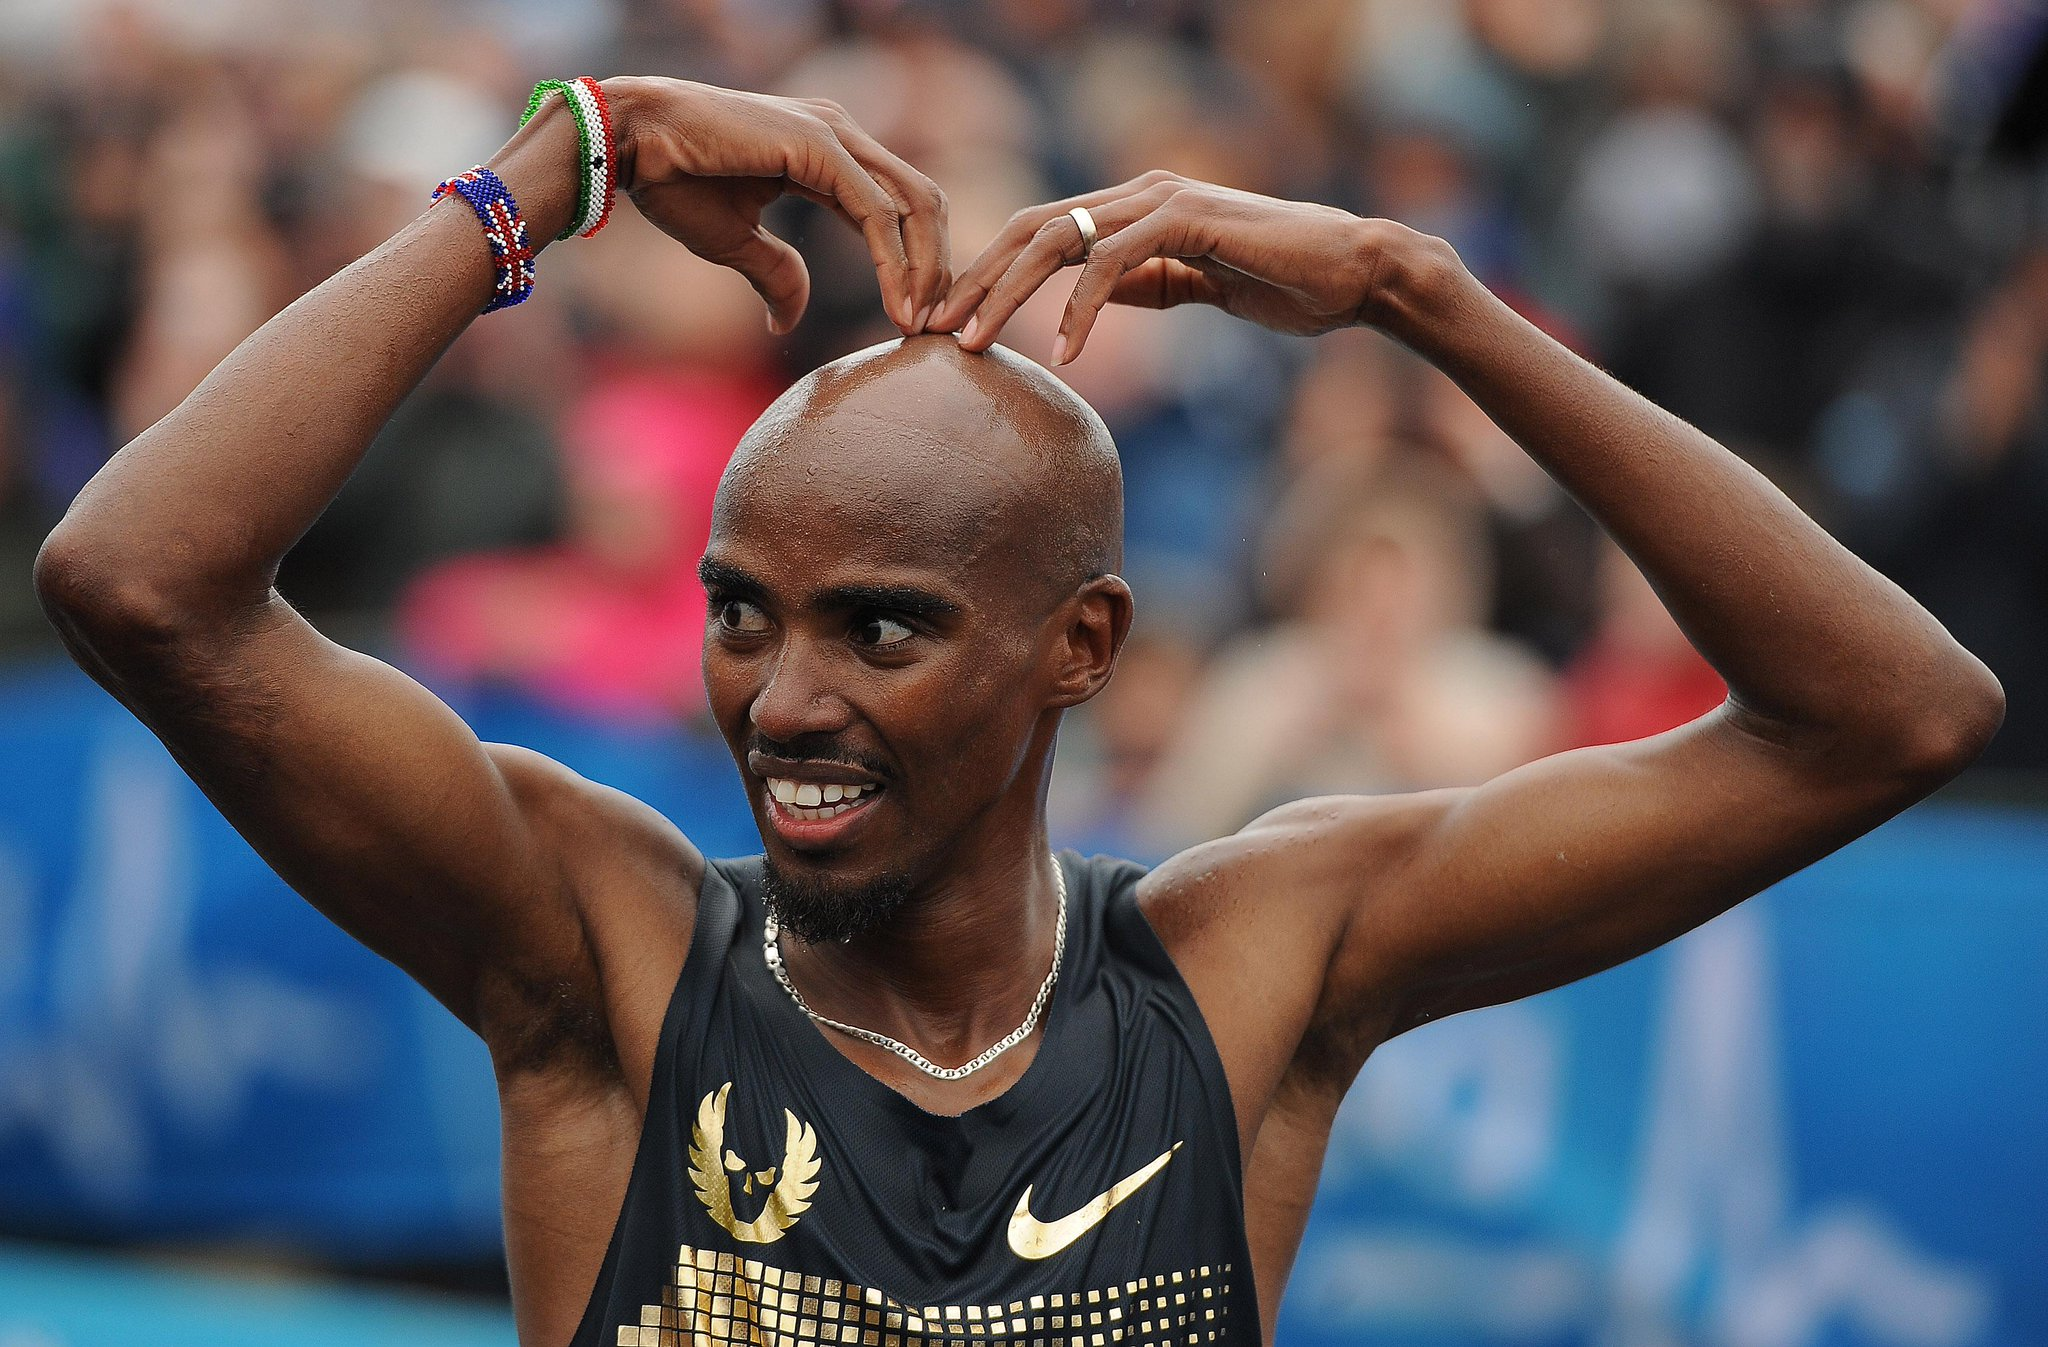 "Mo Farah on withdrawing from the #Glasgow2014 Commonwealth Games: ""My body is telling me it's not ready to race yet."" http://t.co/wAMKzjS6Ix"